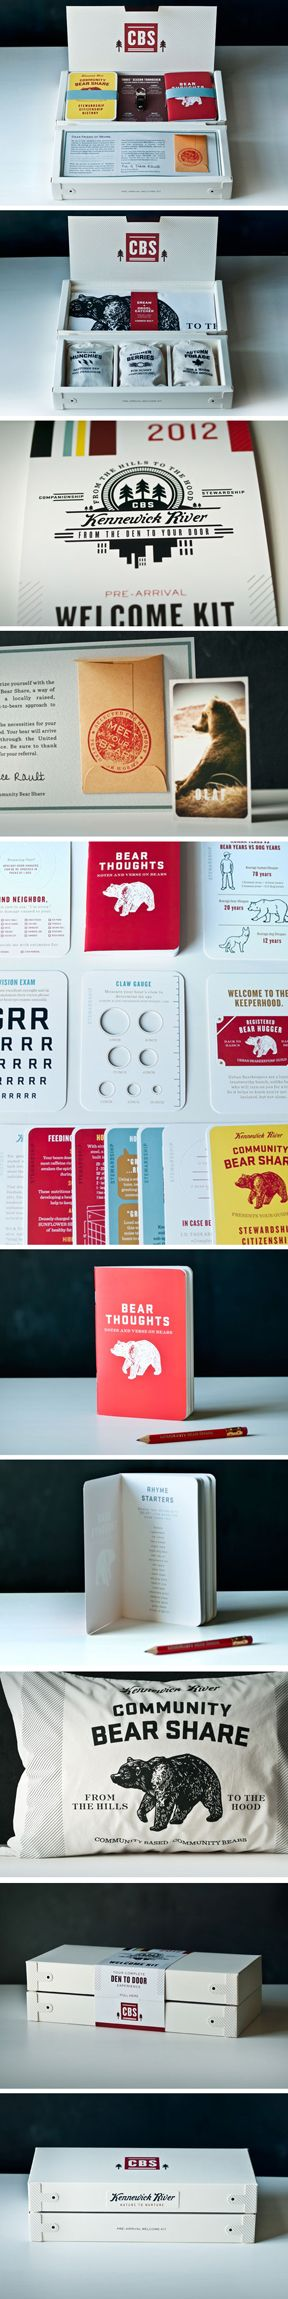 Community Bear Share Welcome Kit by Ultra Creative - I nicely packaged kit with cool animal graphics.